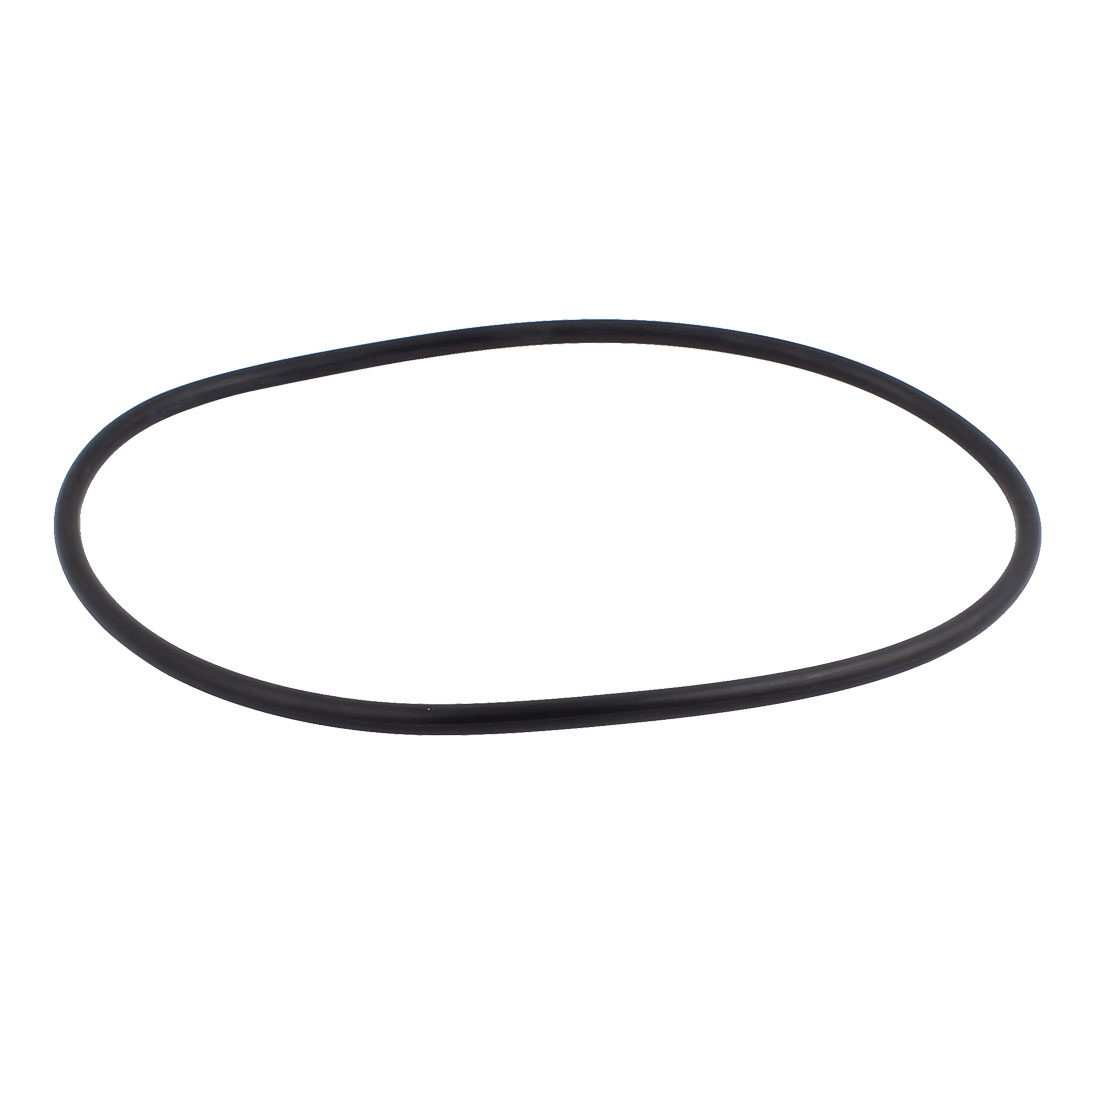 Black Universal O-Ring 270mm x 8.6mm BUNA-N Material Oil Seal Washers Grommets